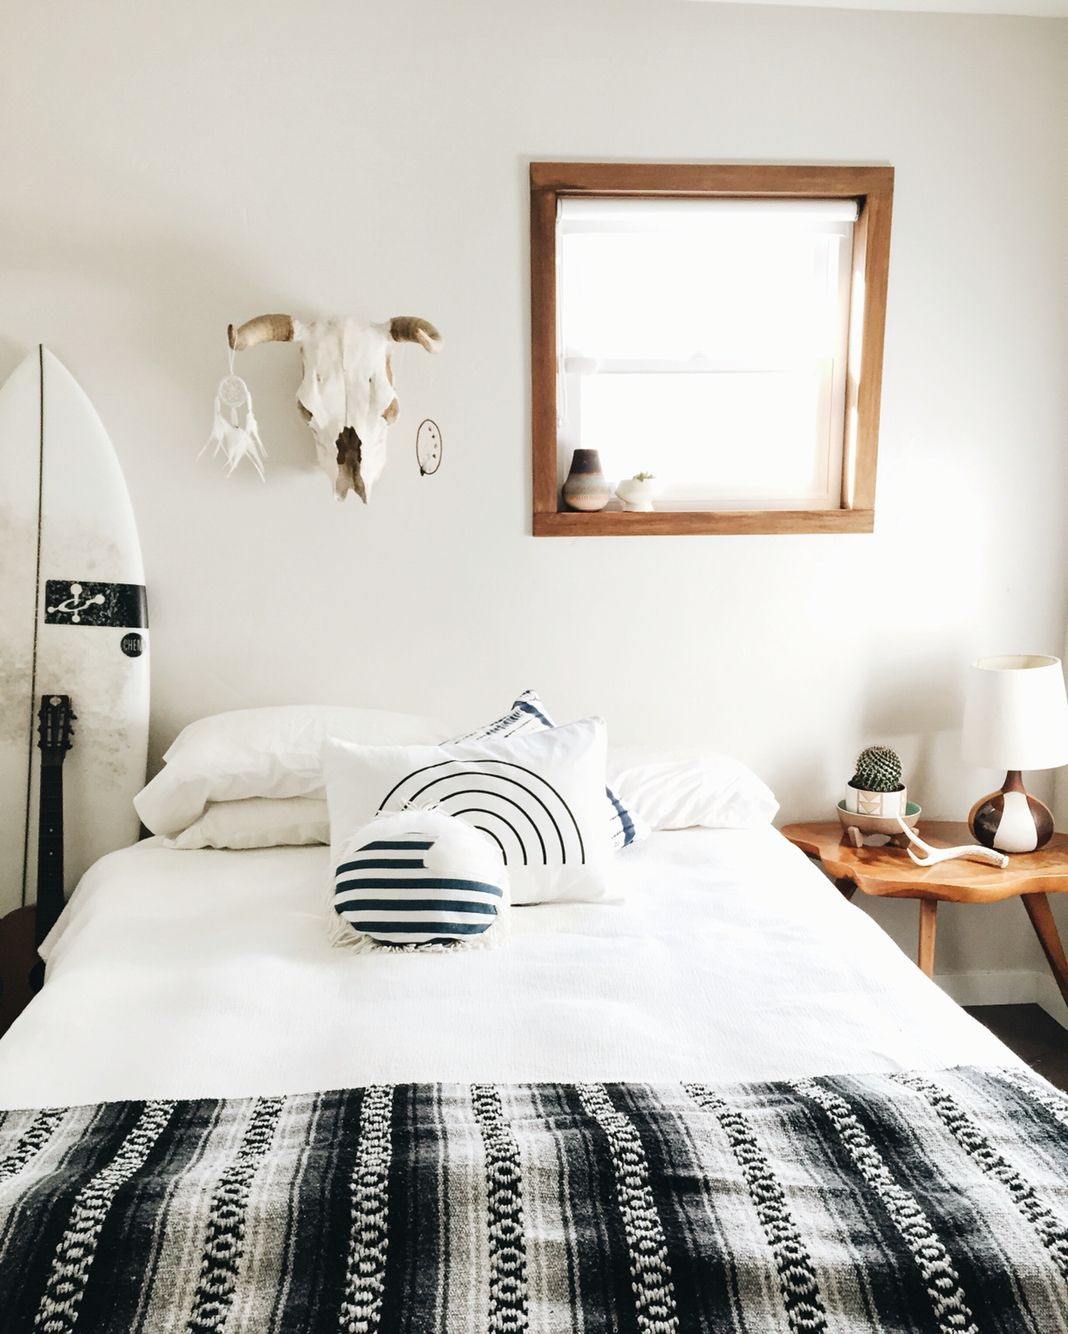 Black Colour Bedroom Off White Bedroom Curtains Bedroom Chandeliers Pottery Barn Small Bedroom Lighting Ideas: THE WHITECAP: Black, Grey & White Mexican Blanket